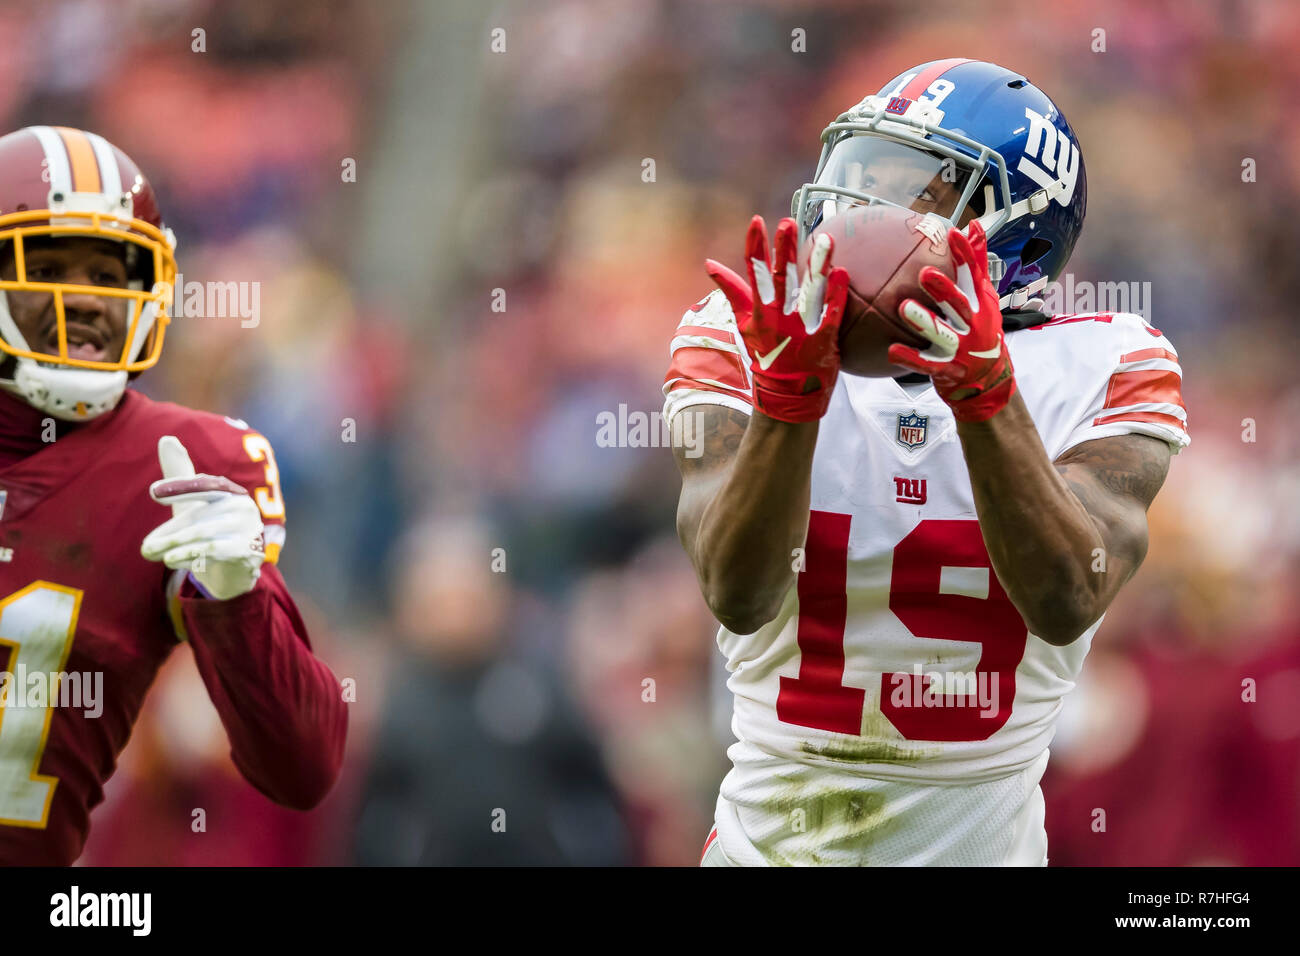 Landover, Maryland, USA. 09th Dec, 2018. New York Giants wide receiver Corey Coleman (19) catches a pass in front of Washington Redskins cornerback Fabian Moreau (31) during the first half of the NFL game between the New York Giants and the Washington Redskins at FedExField in Landover, Maryland. Scott Taetsch/CSM/Alamy Live News Stock Photo